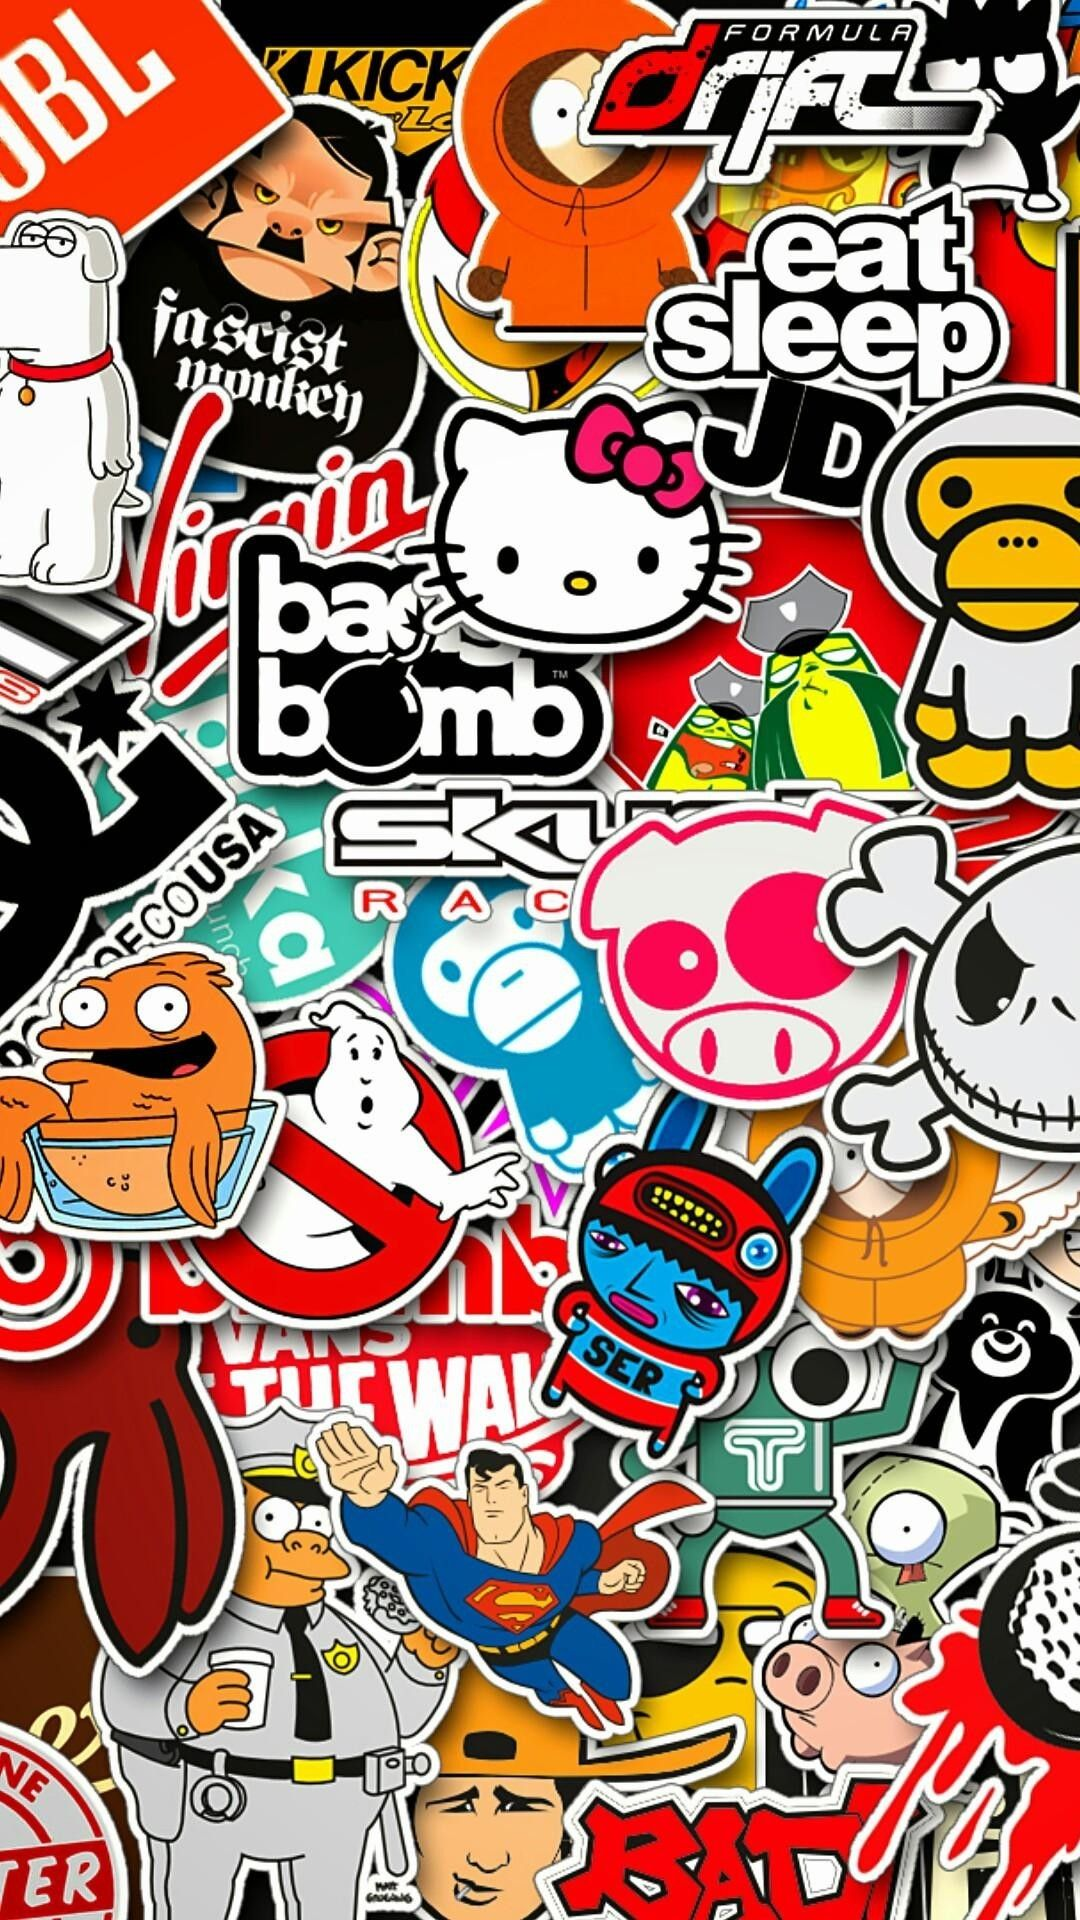 1080x1920 1080 X 1920 Background Vertical Download Free Sticker Bomb Wallpaper Sticker Bomb Graffiti Wallpaper